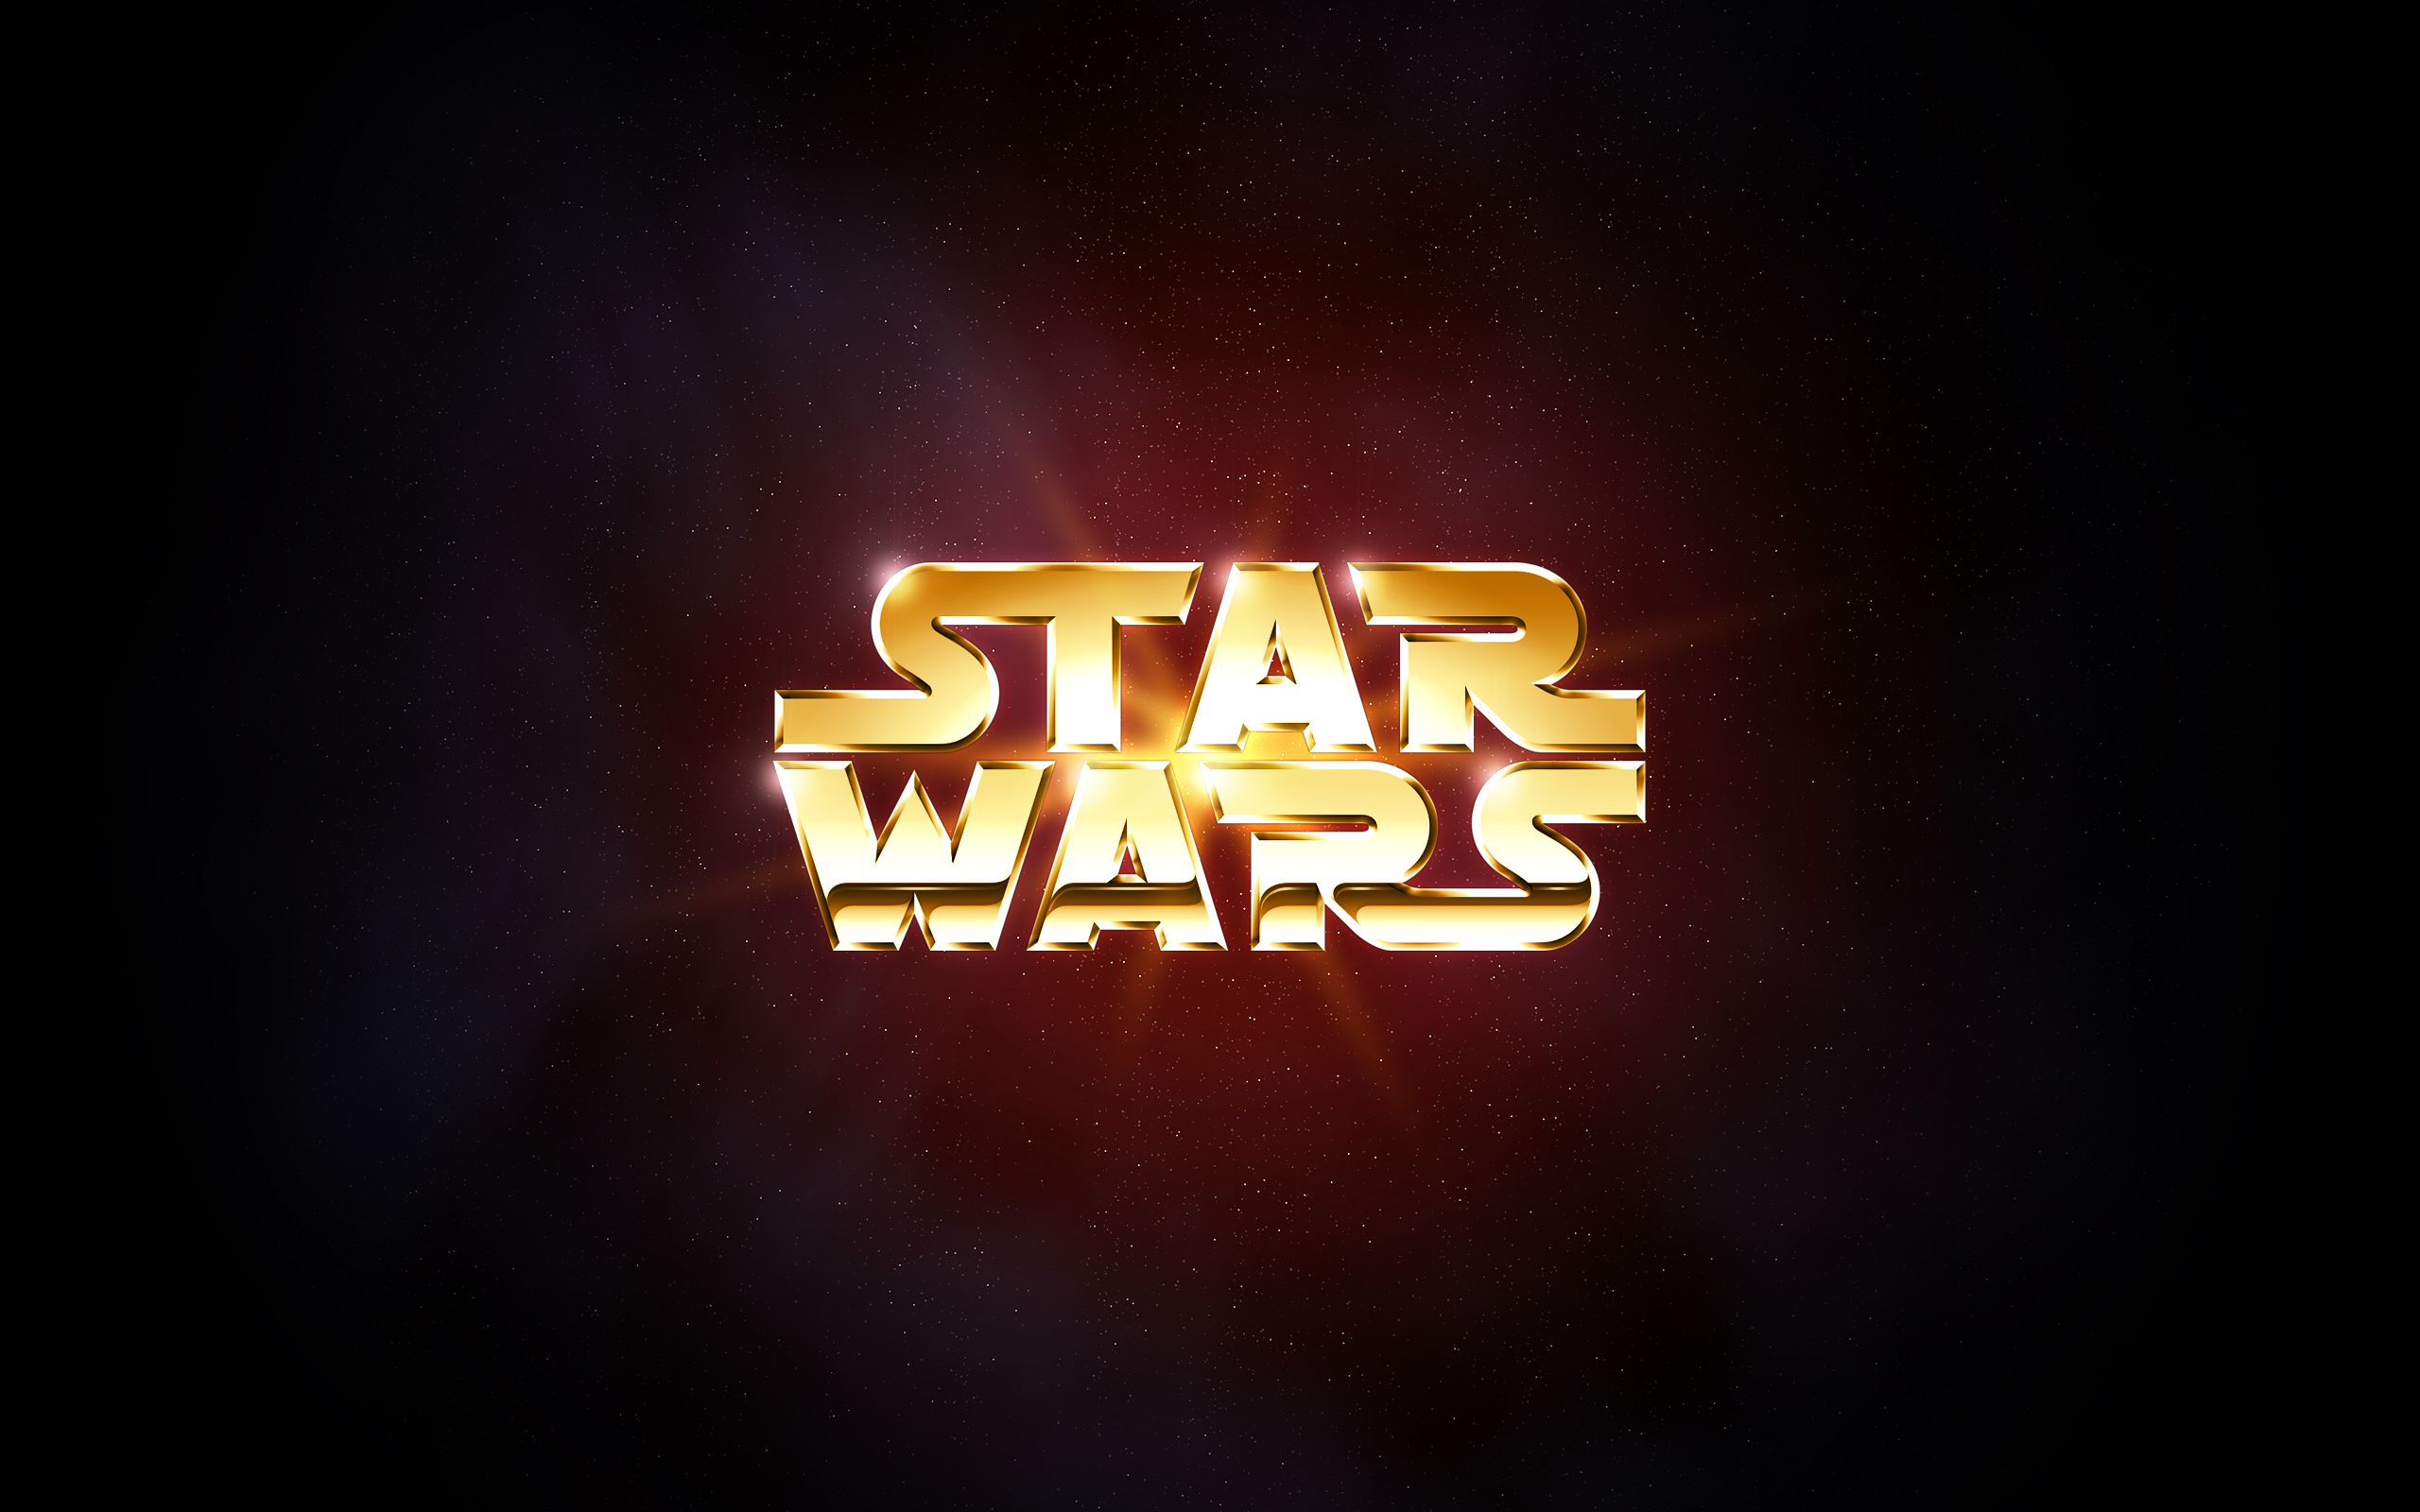 Sci Fi - Star Wars Logo Minimalist Wallpaper